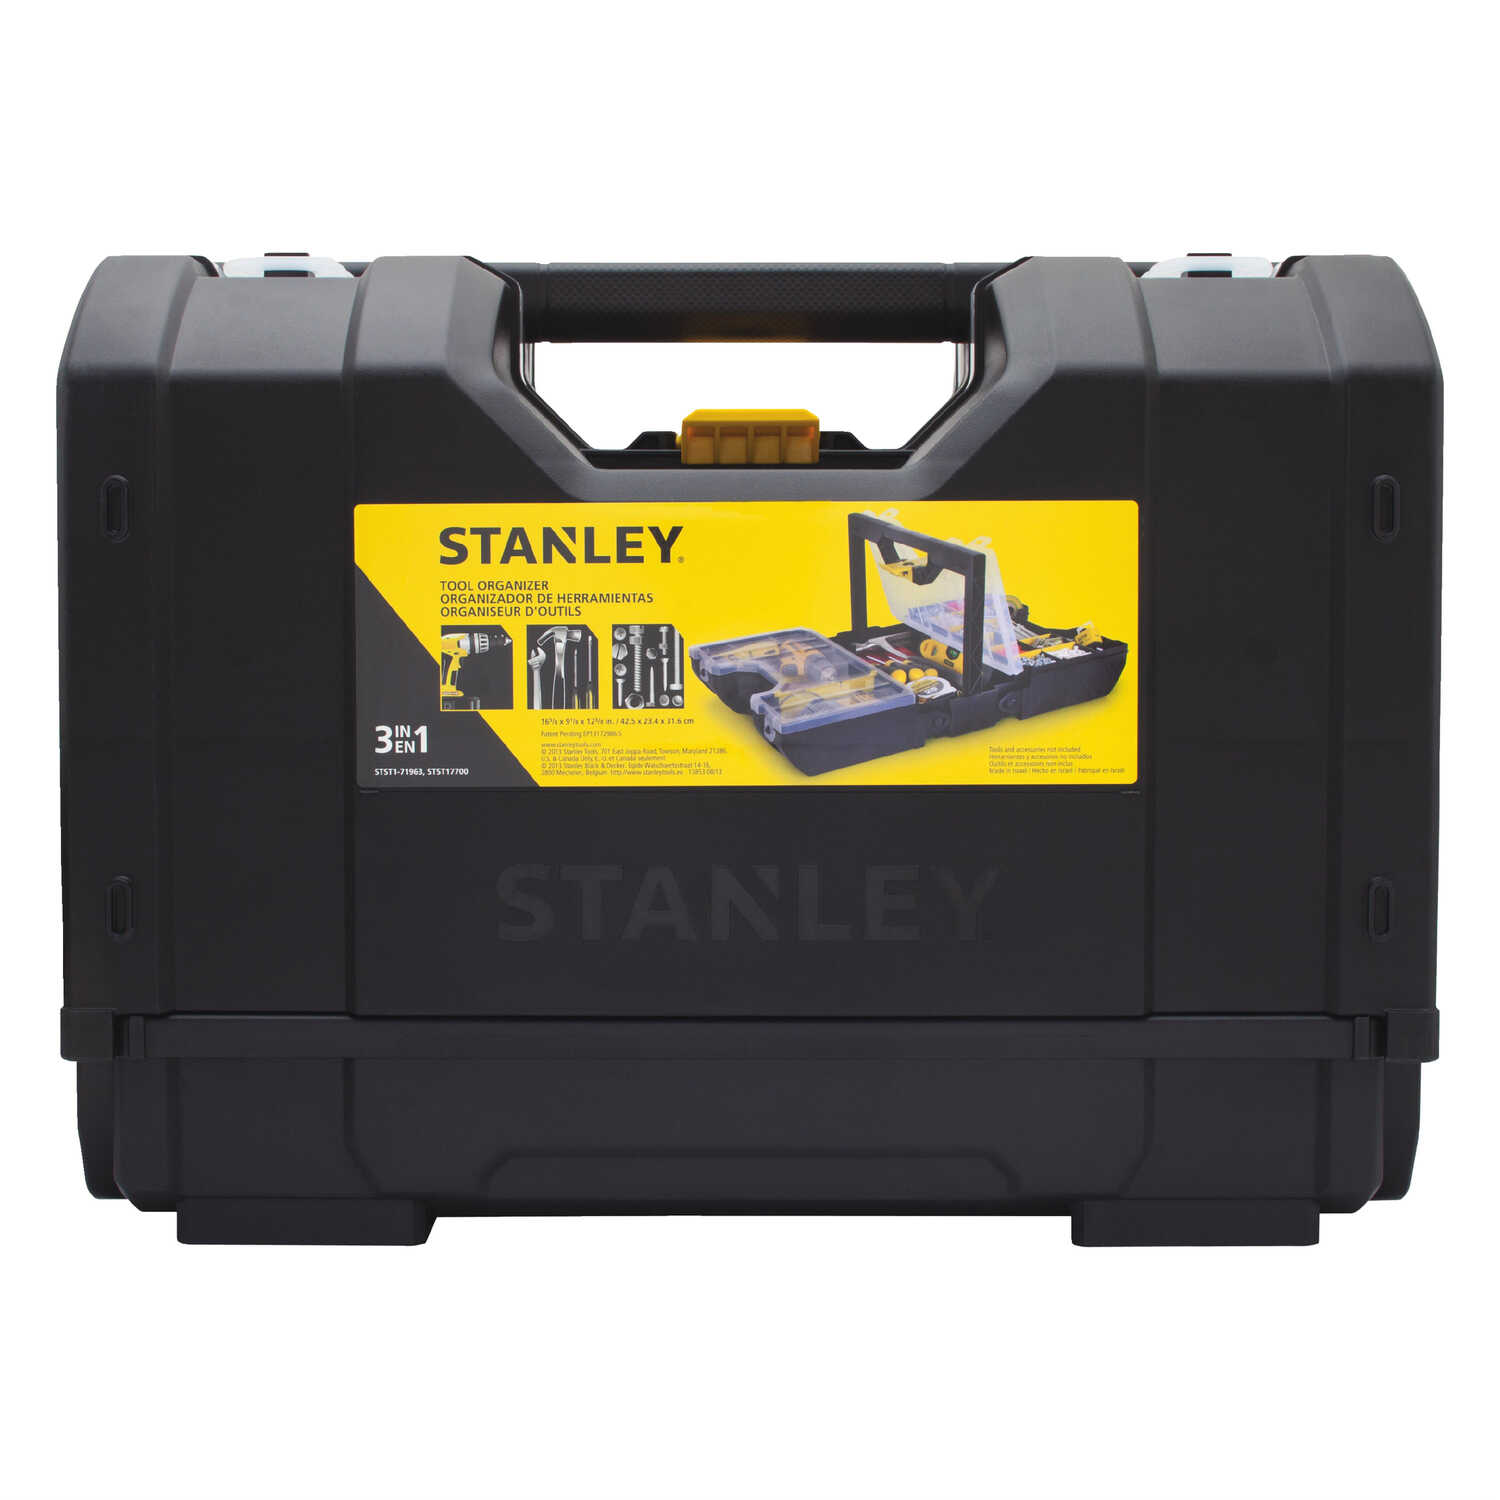 Stanley  16.8 in. Plastic  Tool Box Organizer  9 in. W x 12 in. H Yellow/Black